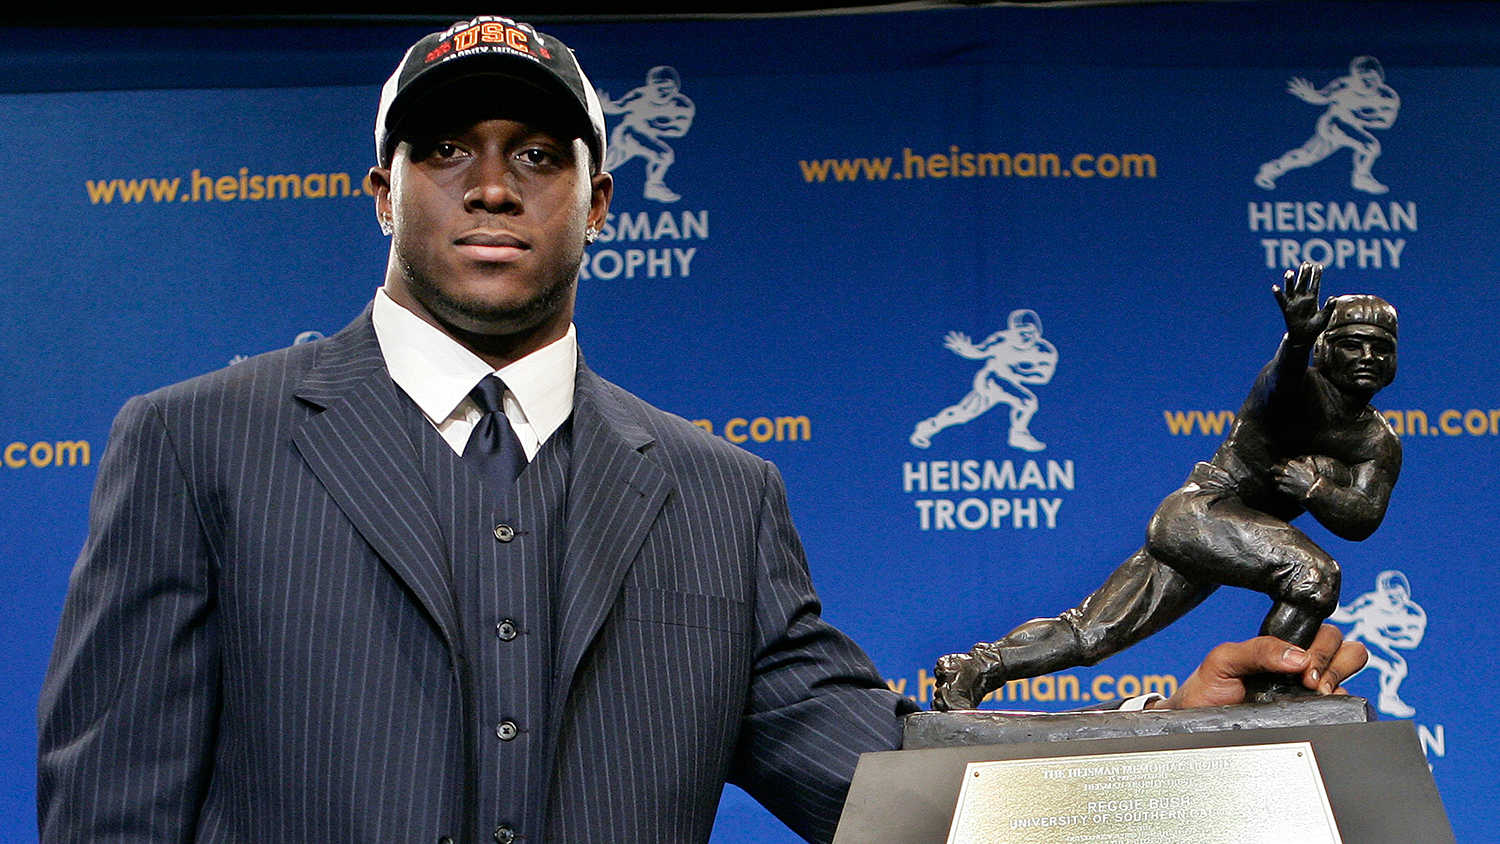 71st Annual Heisman Memorial Trophy Award Presentation